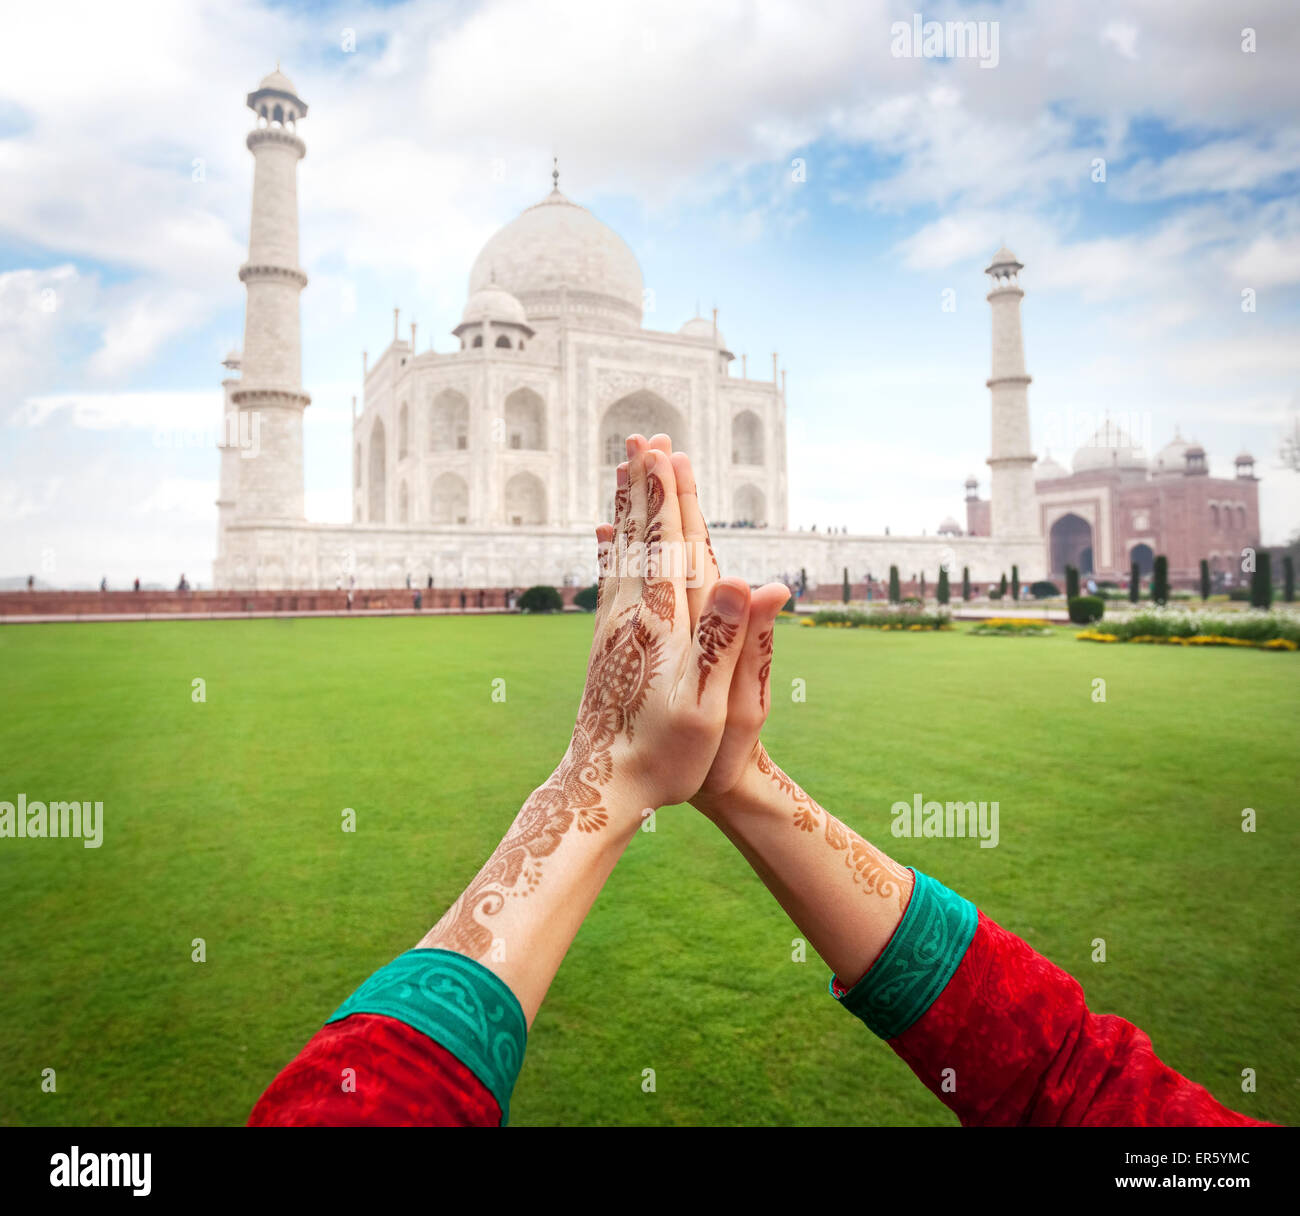 Woman hands with henna painting in Namaste gesture near Taj Mahal in Agra, Uttar Pradesh, India - Stock Image